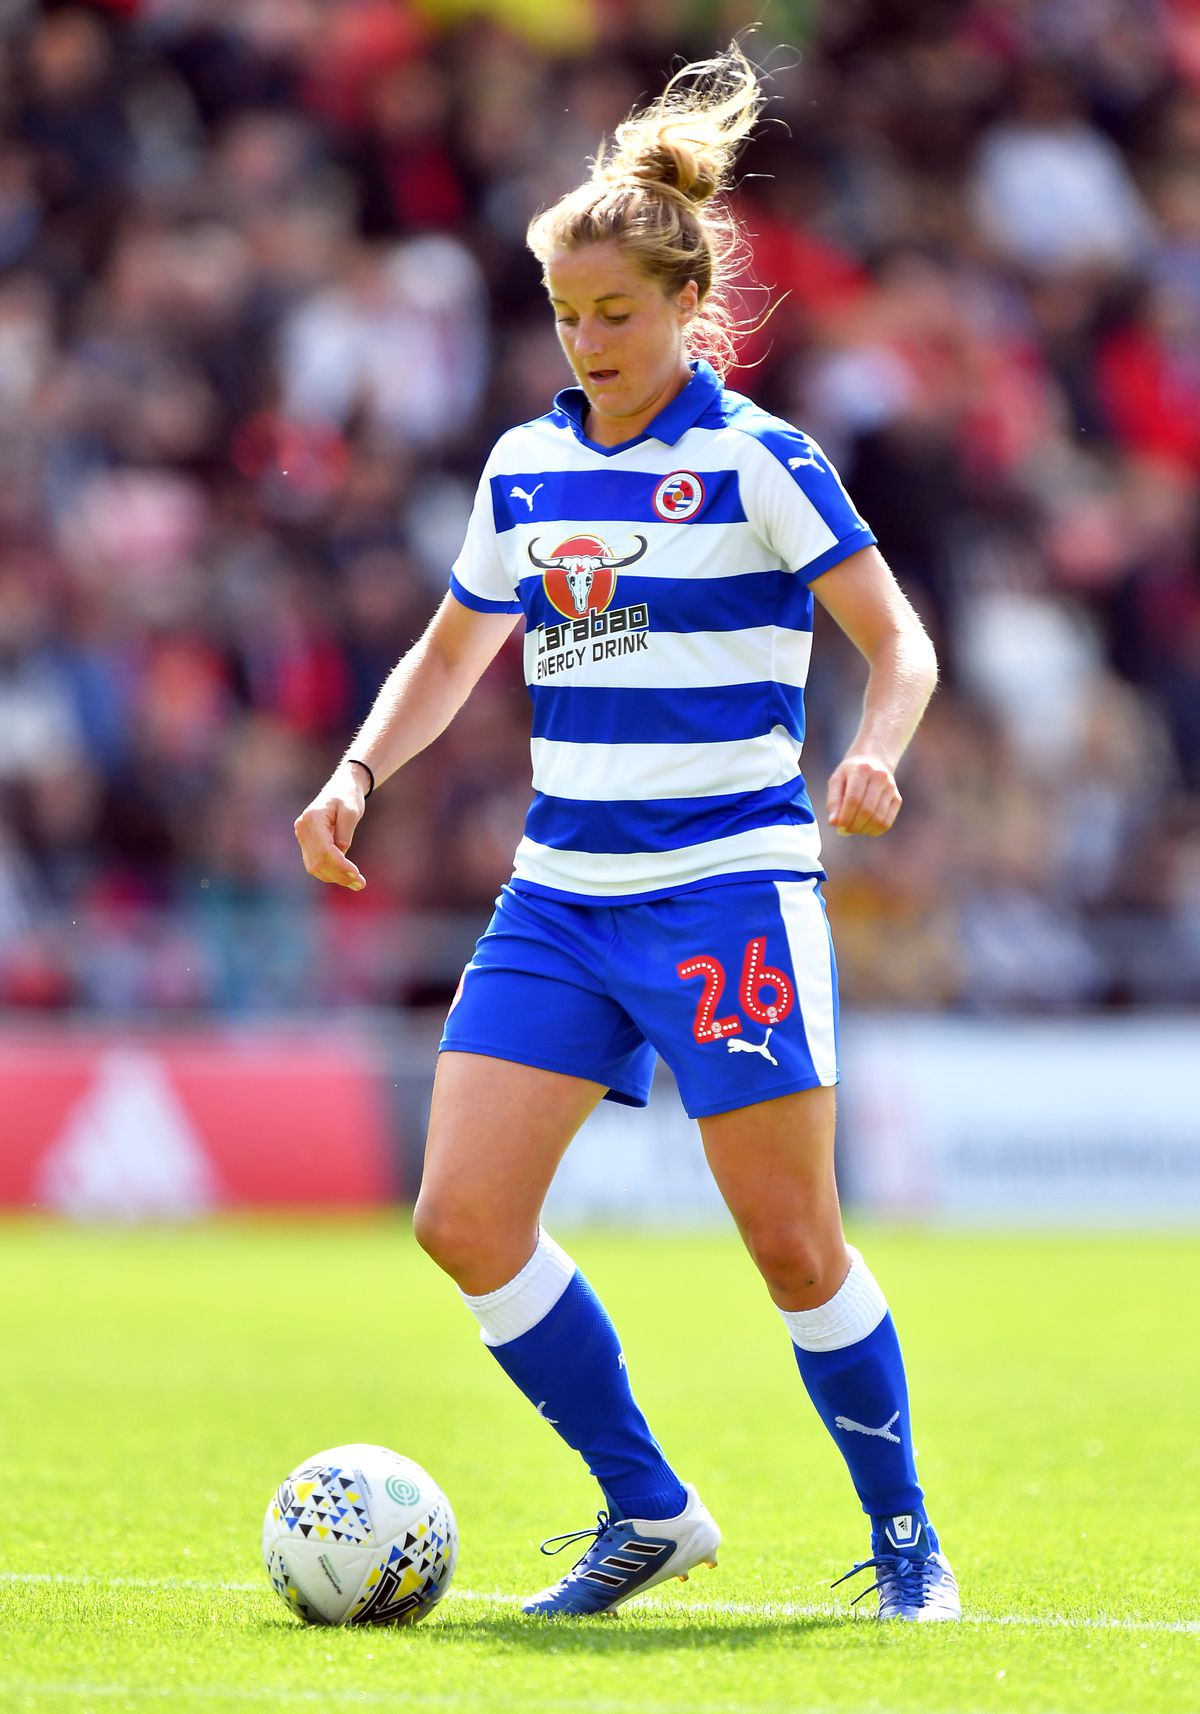 Manchester United Women v Reading FC Women - Continental Tyres Cup - Group Two North - Leigh Sports Village